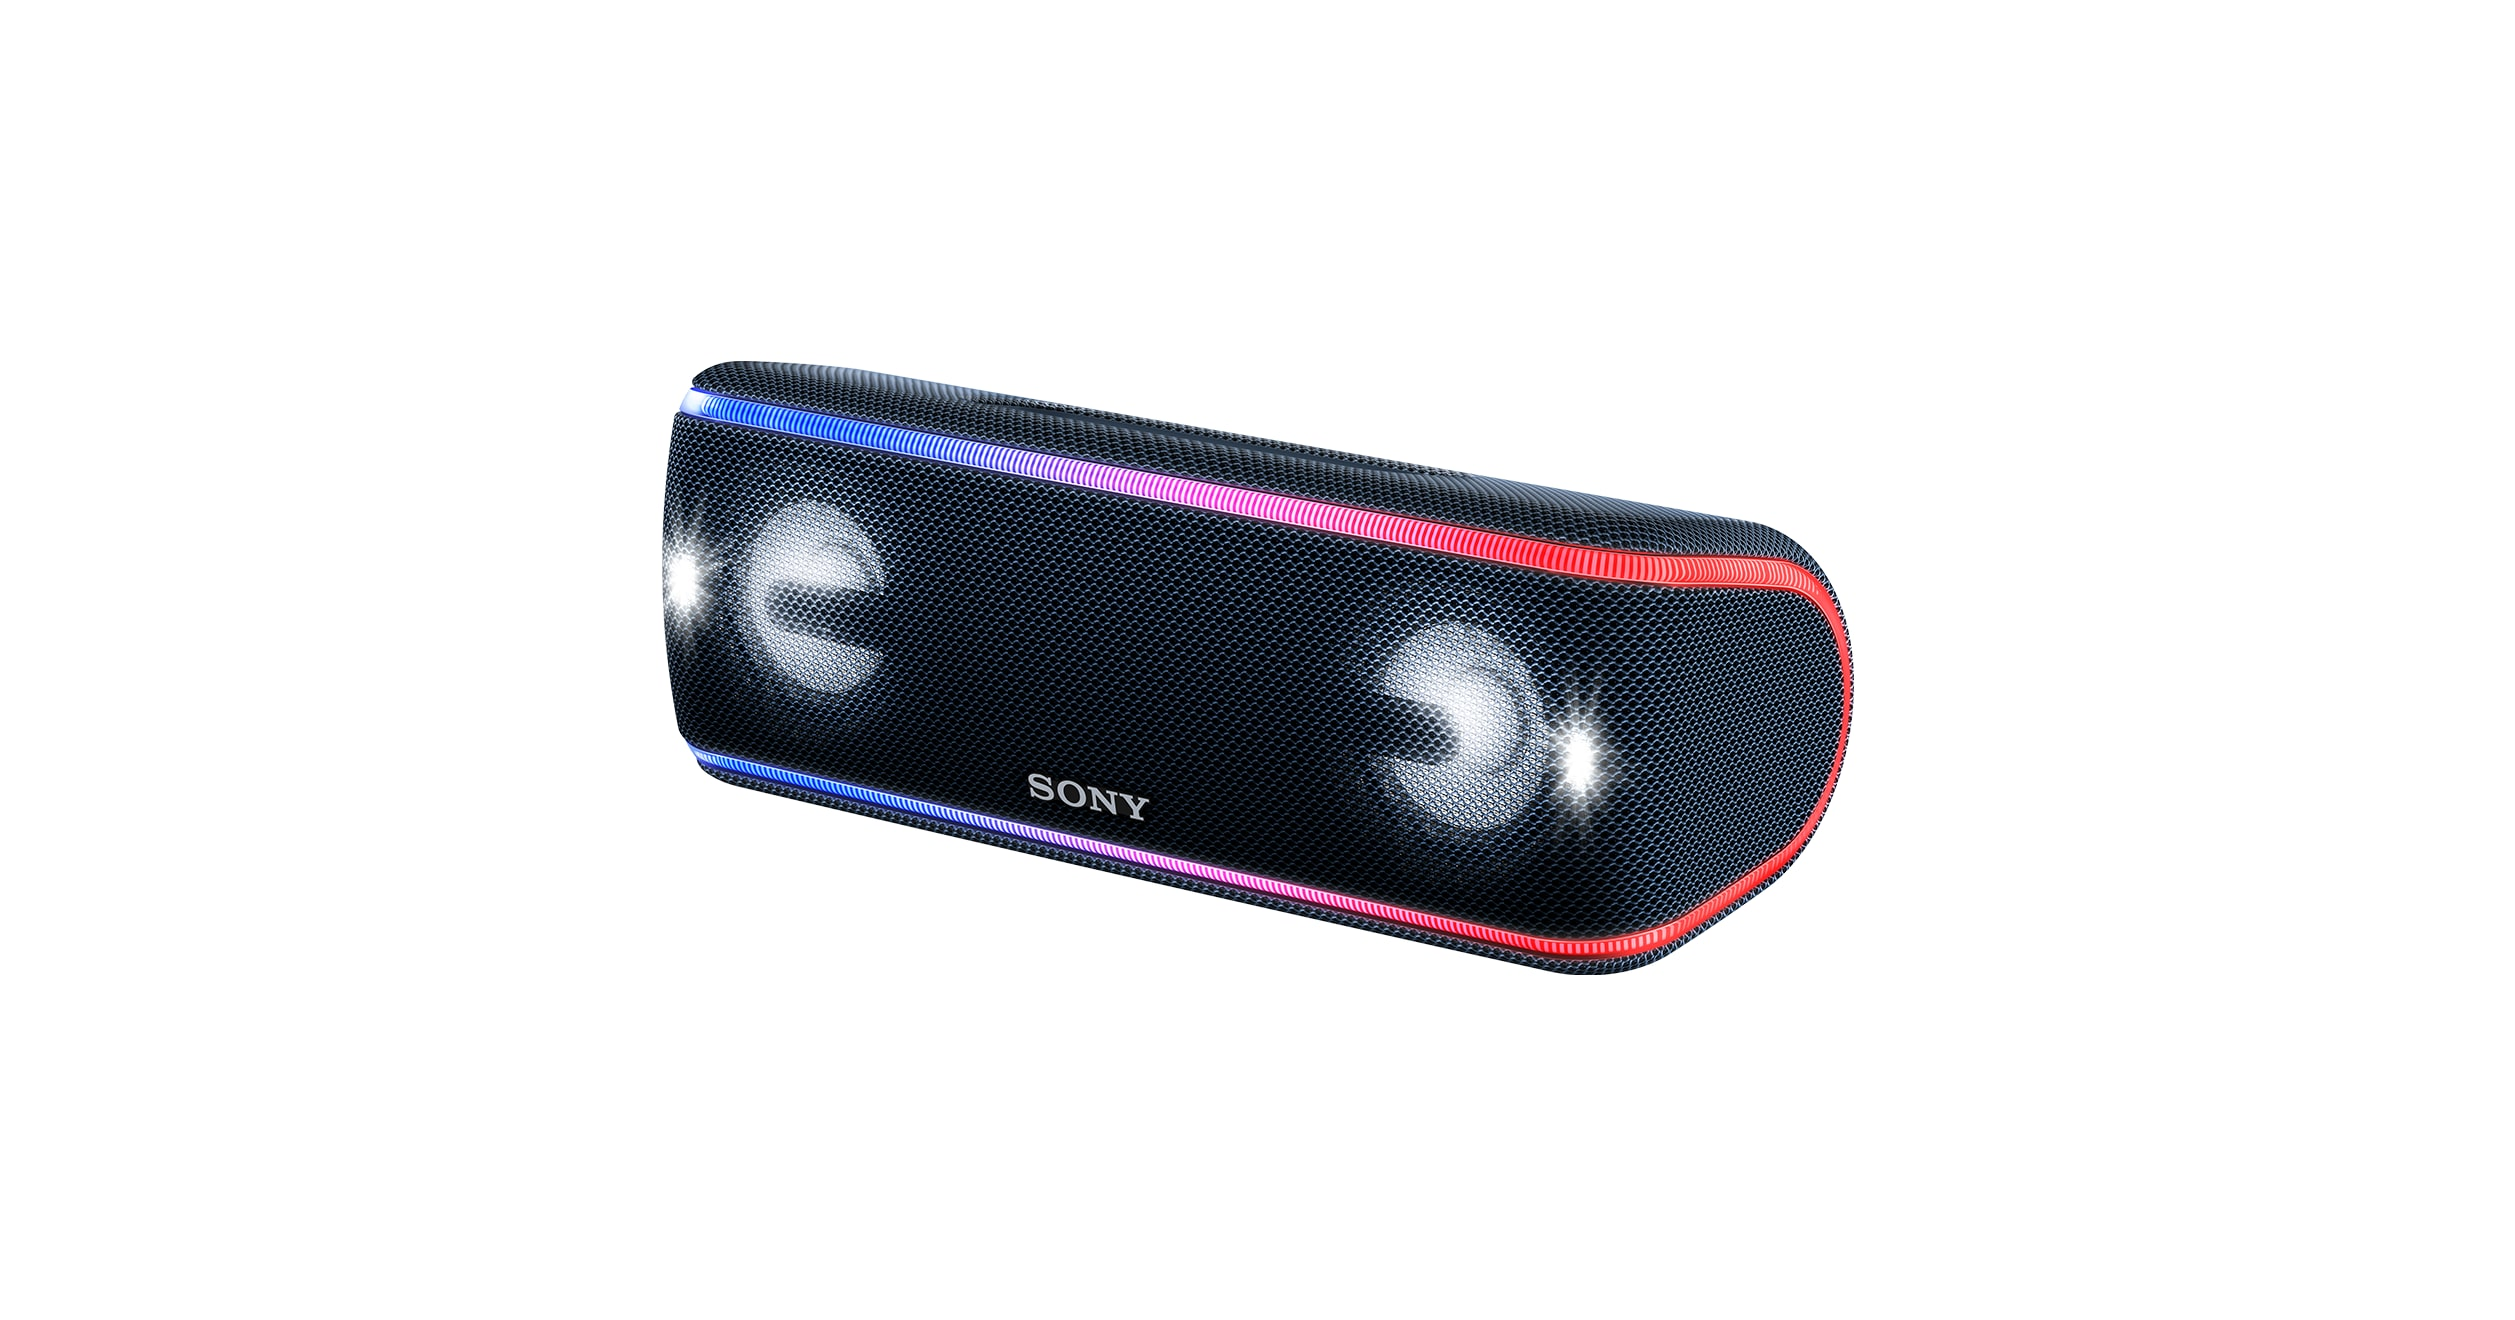 Portable Live Sound Waterproof Wireless Speaker Srs Xb41 Sony Us